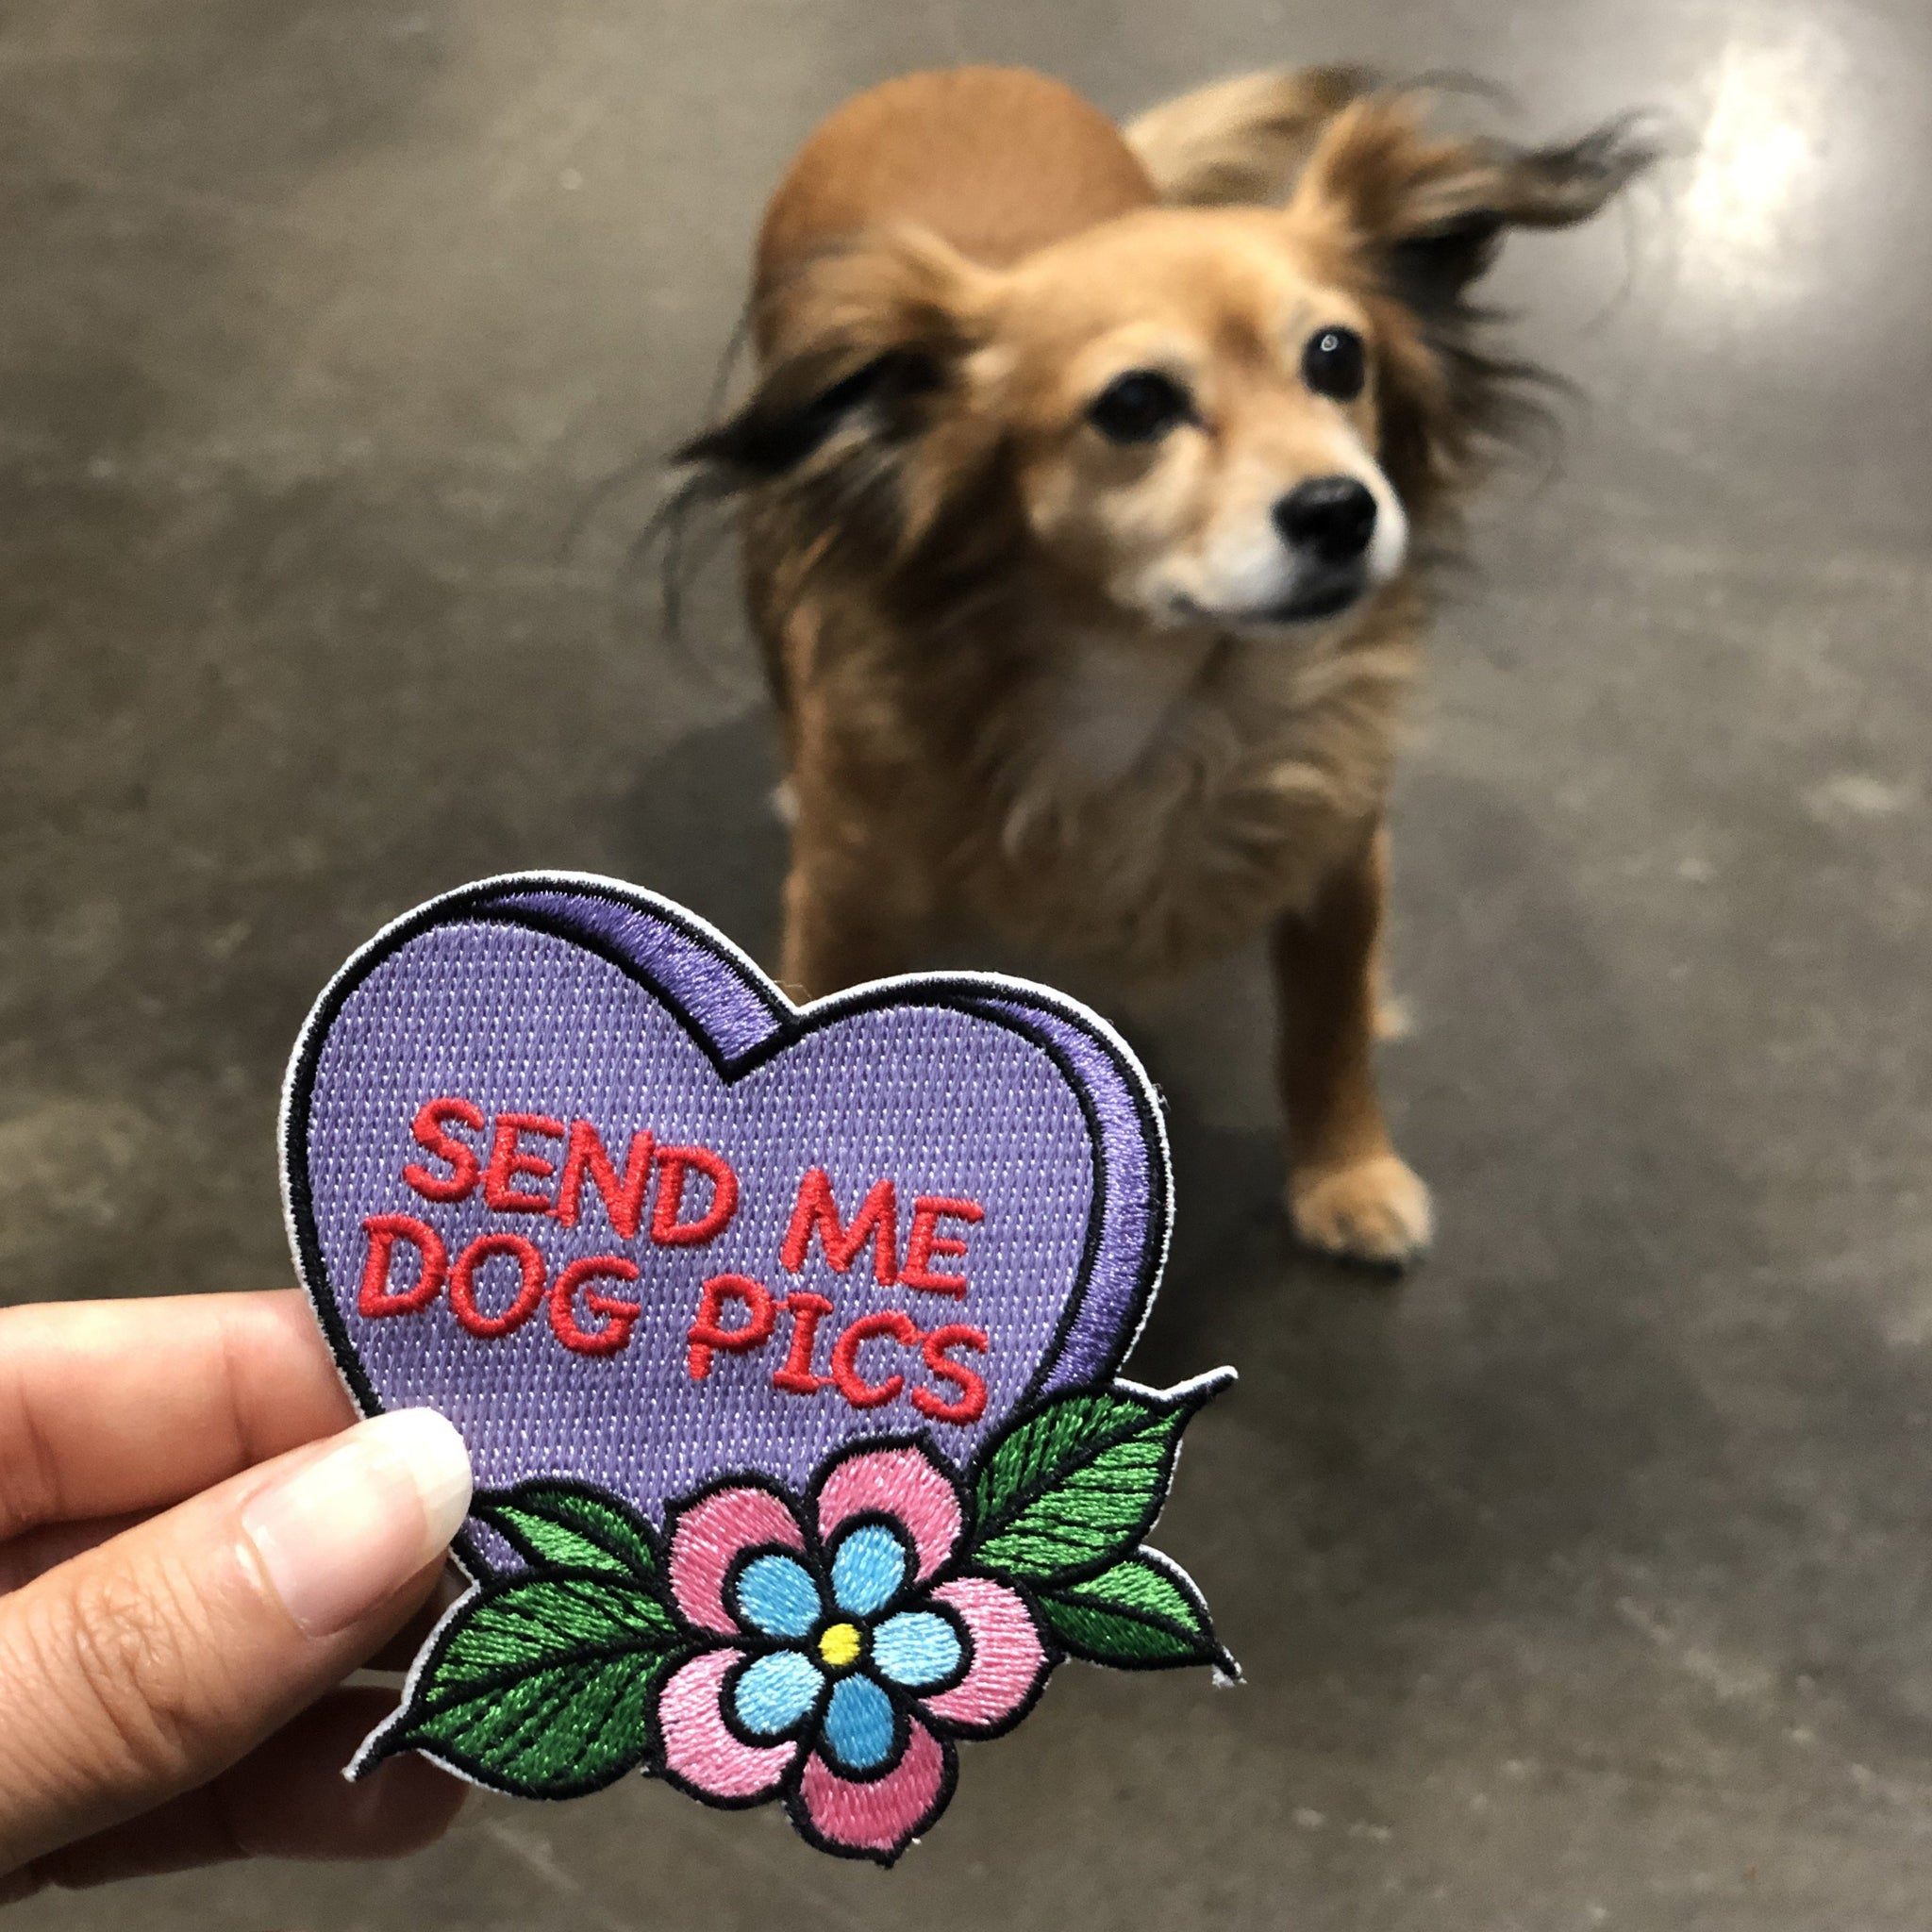 Send Me Dog Pics - Patch